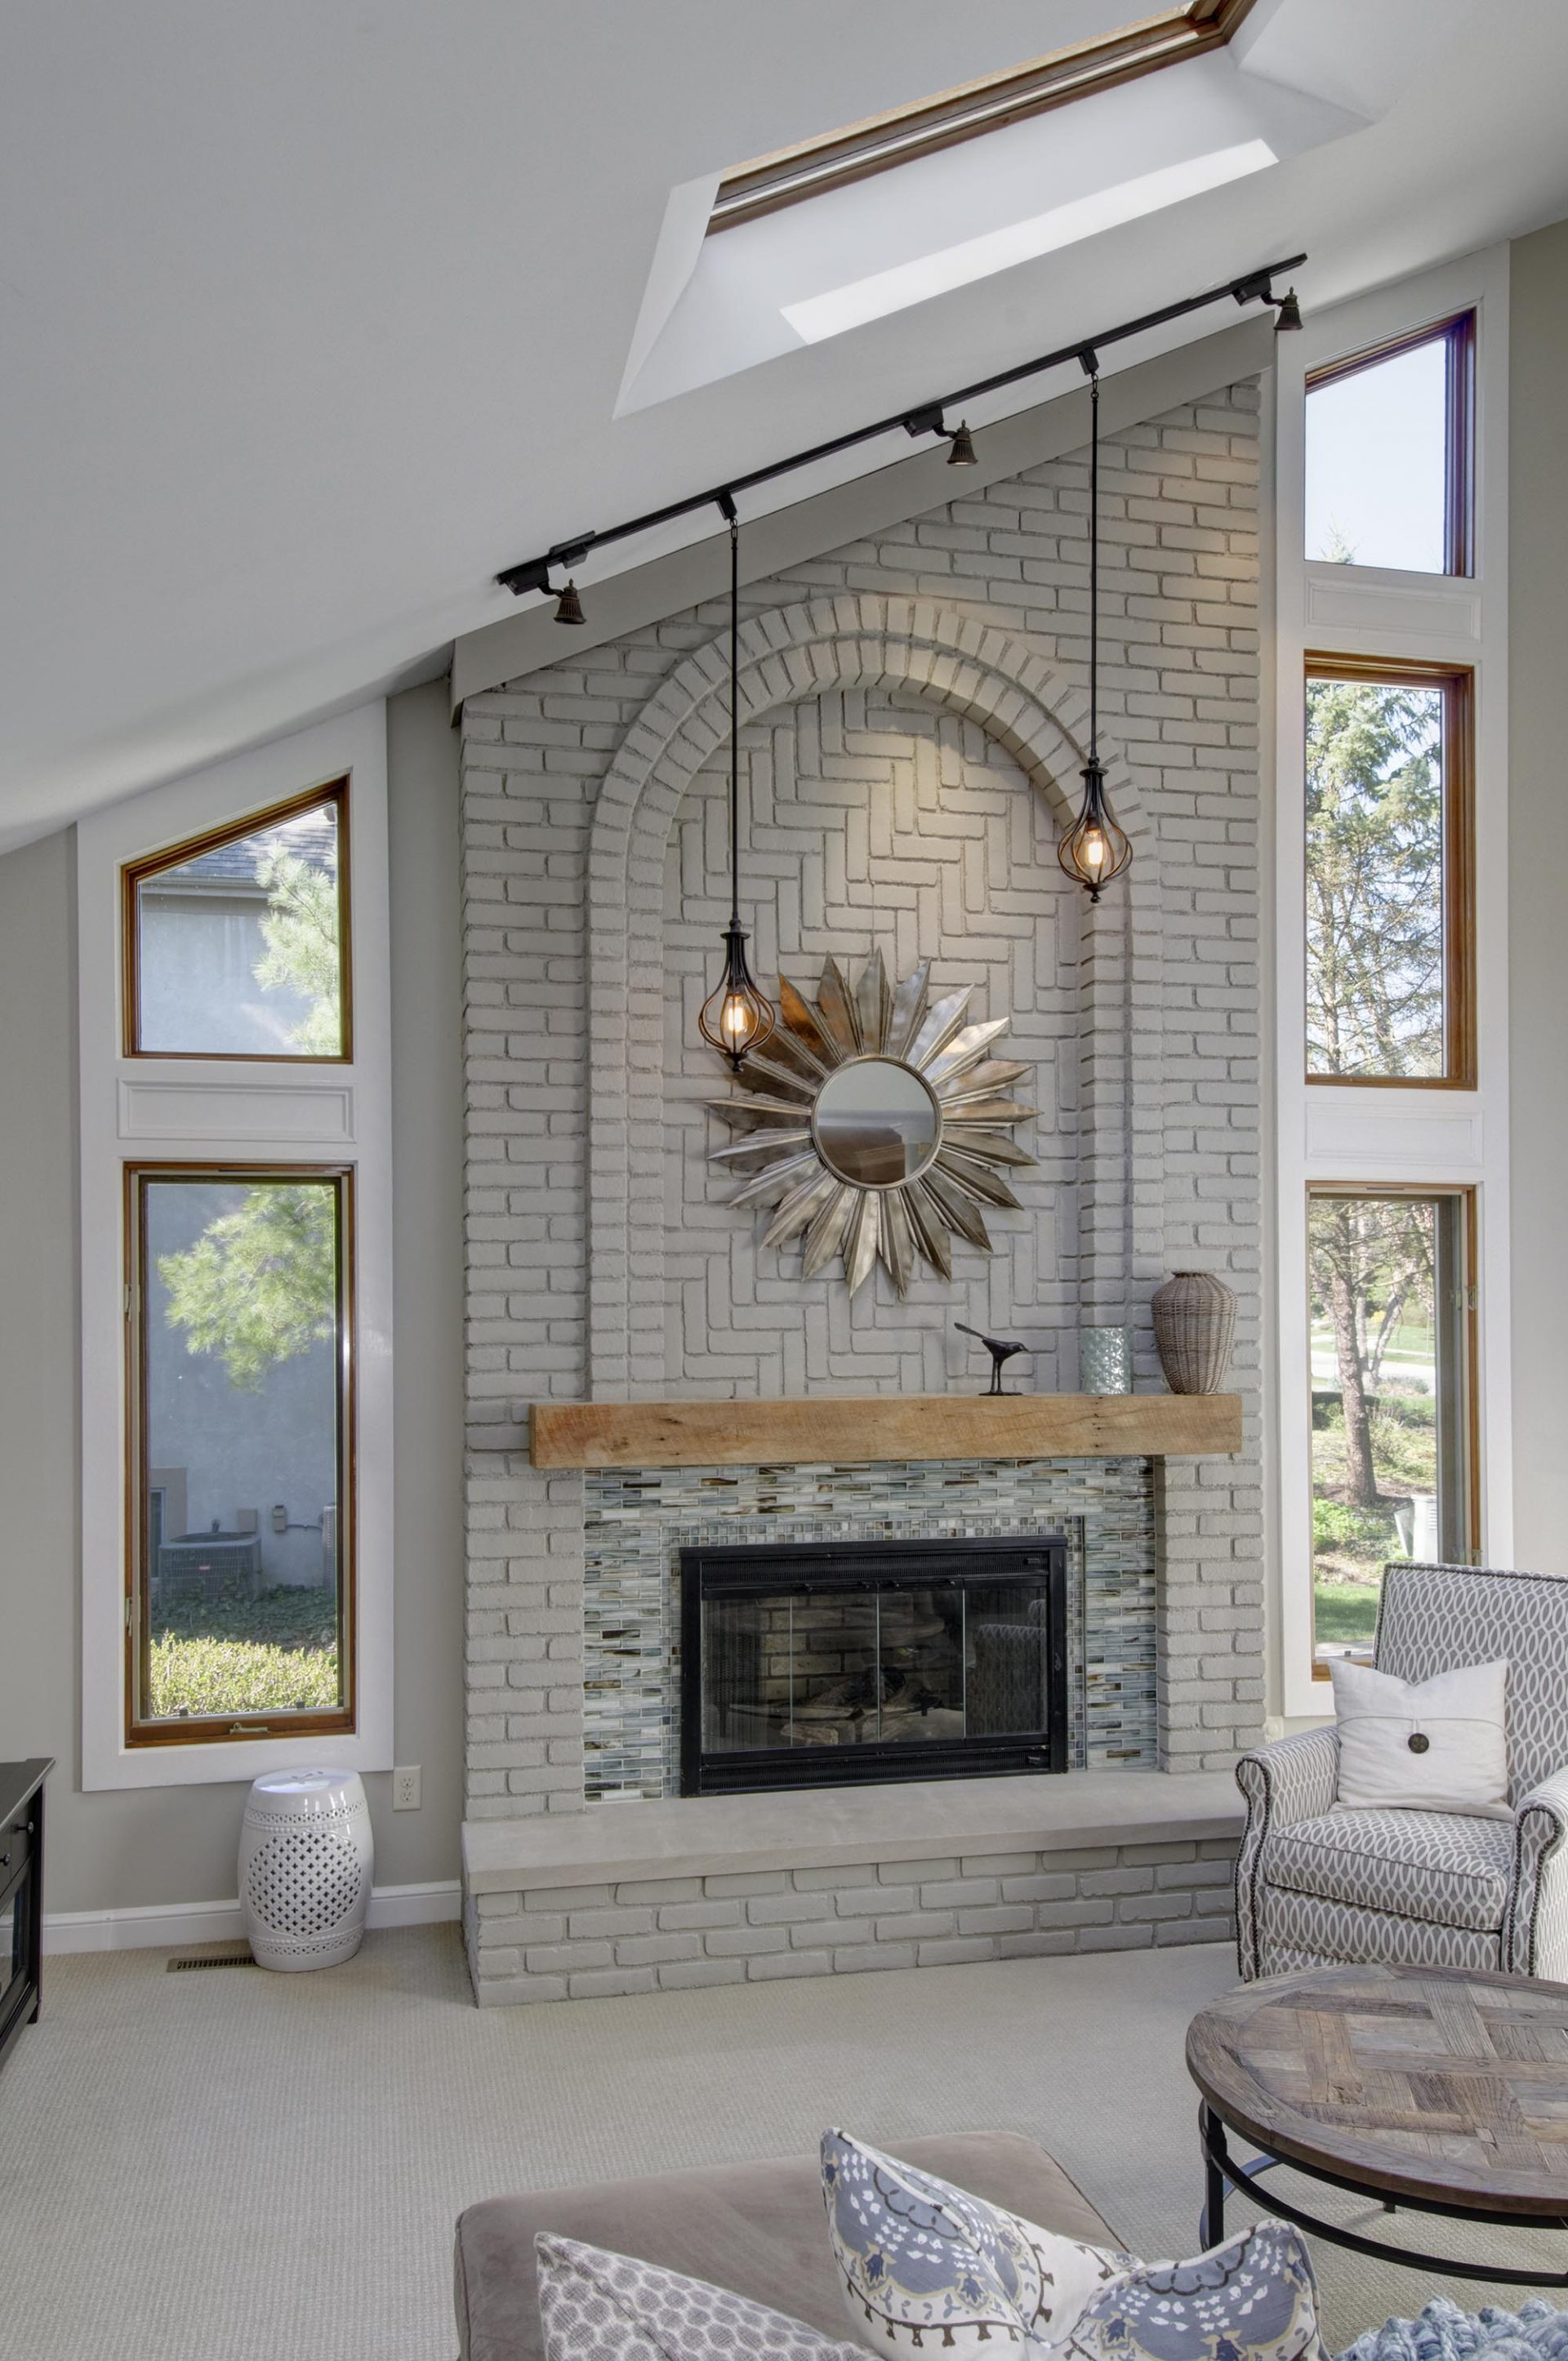 Fireplace, Dave Fox, Remodel,brick, painted brick, tile, decotile